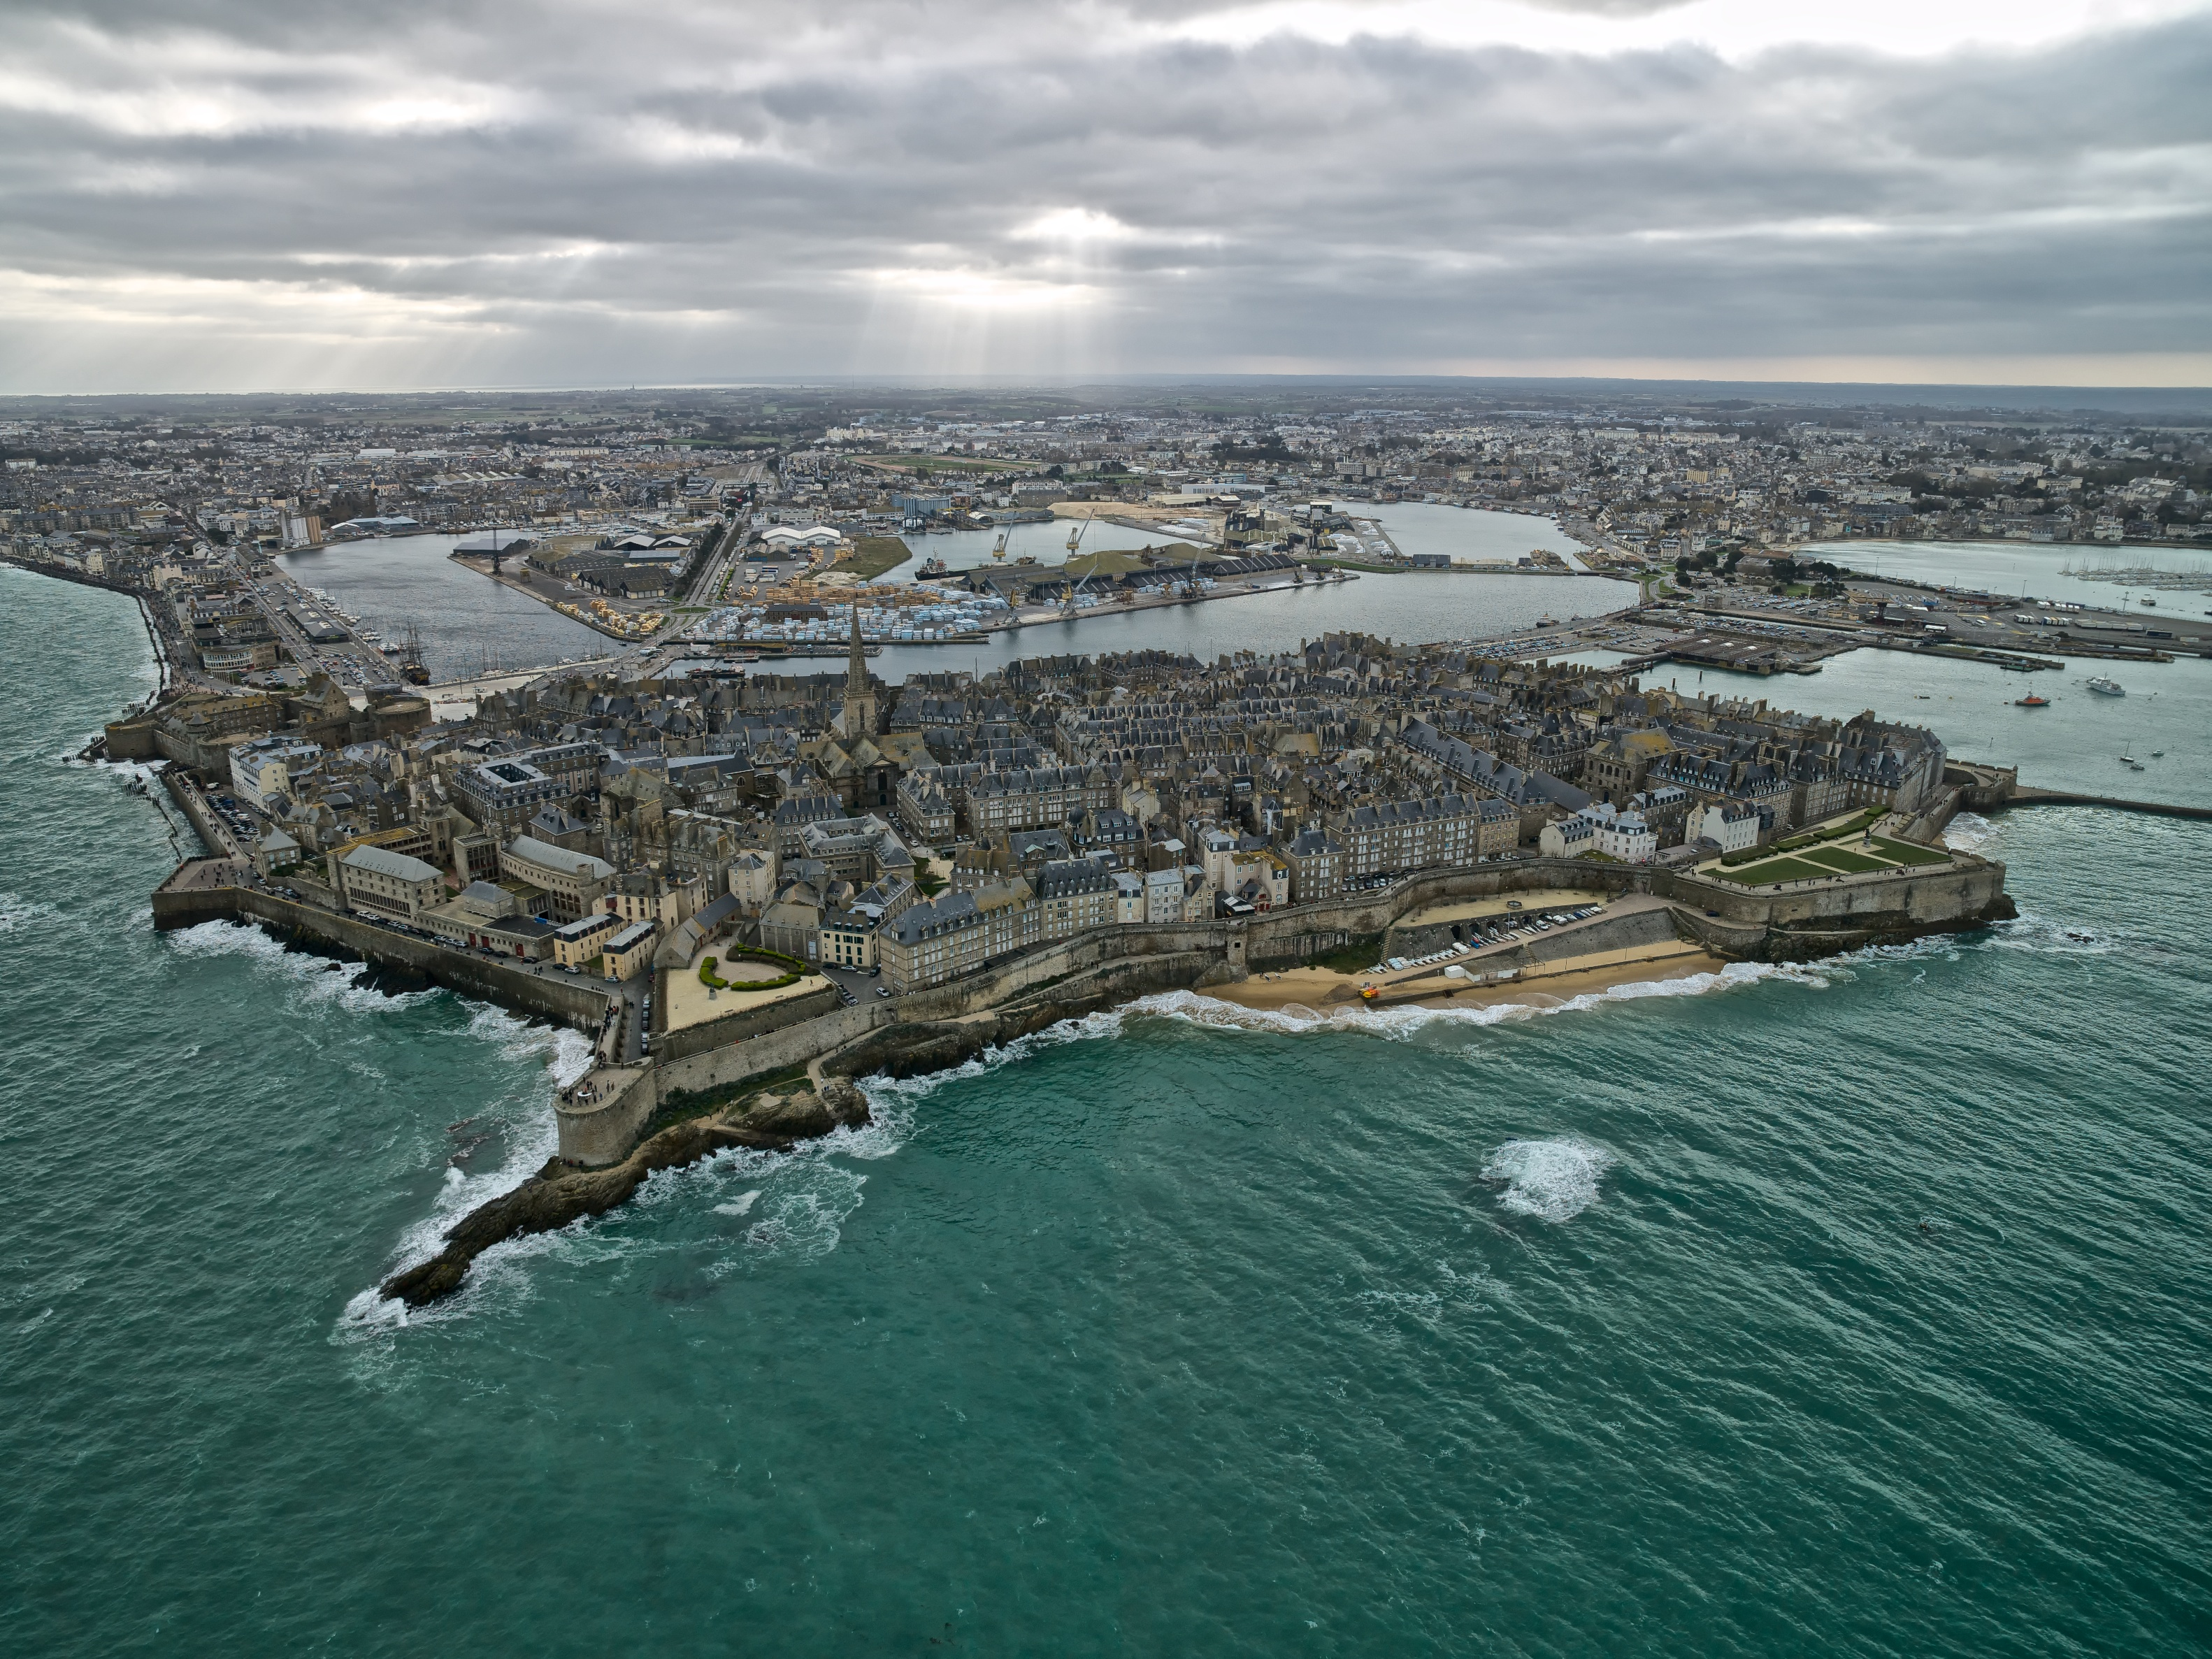 The great tide of the century, Saint-Malo, France